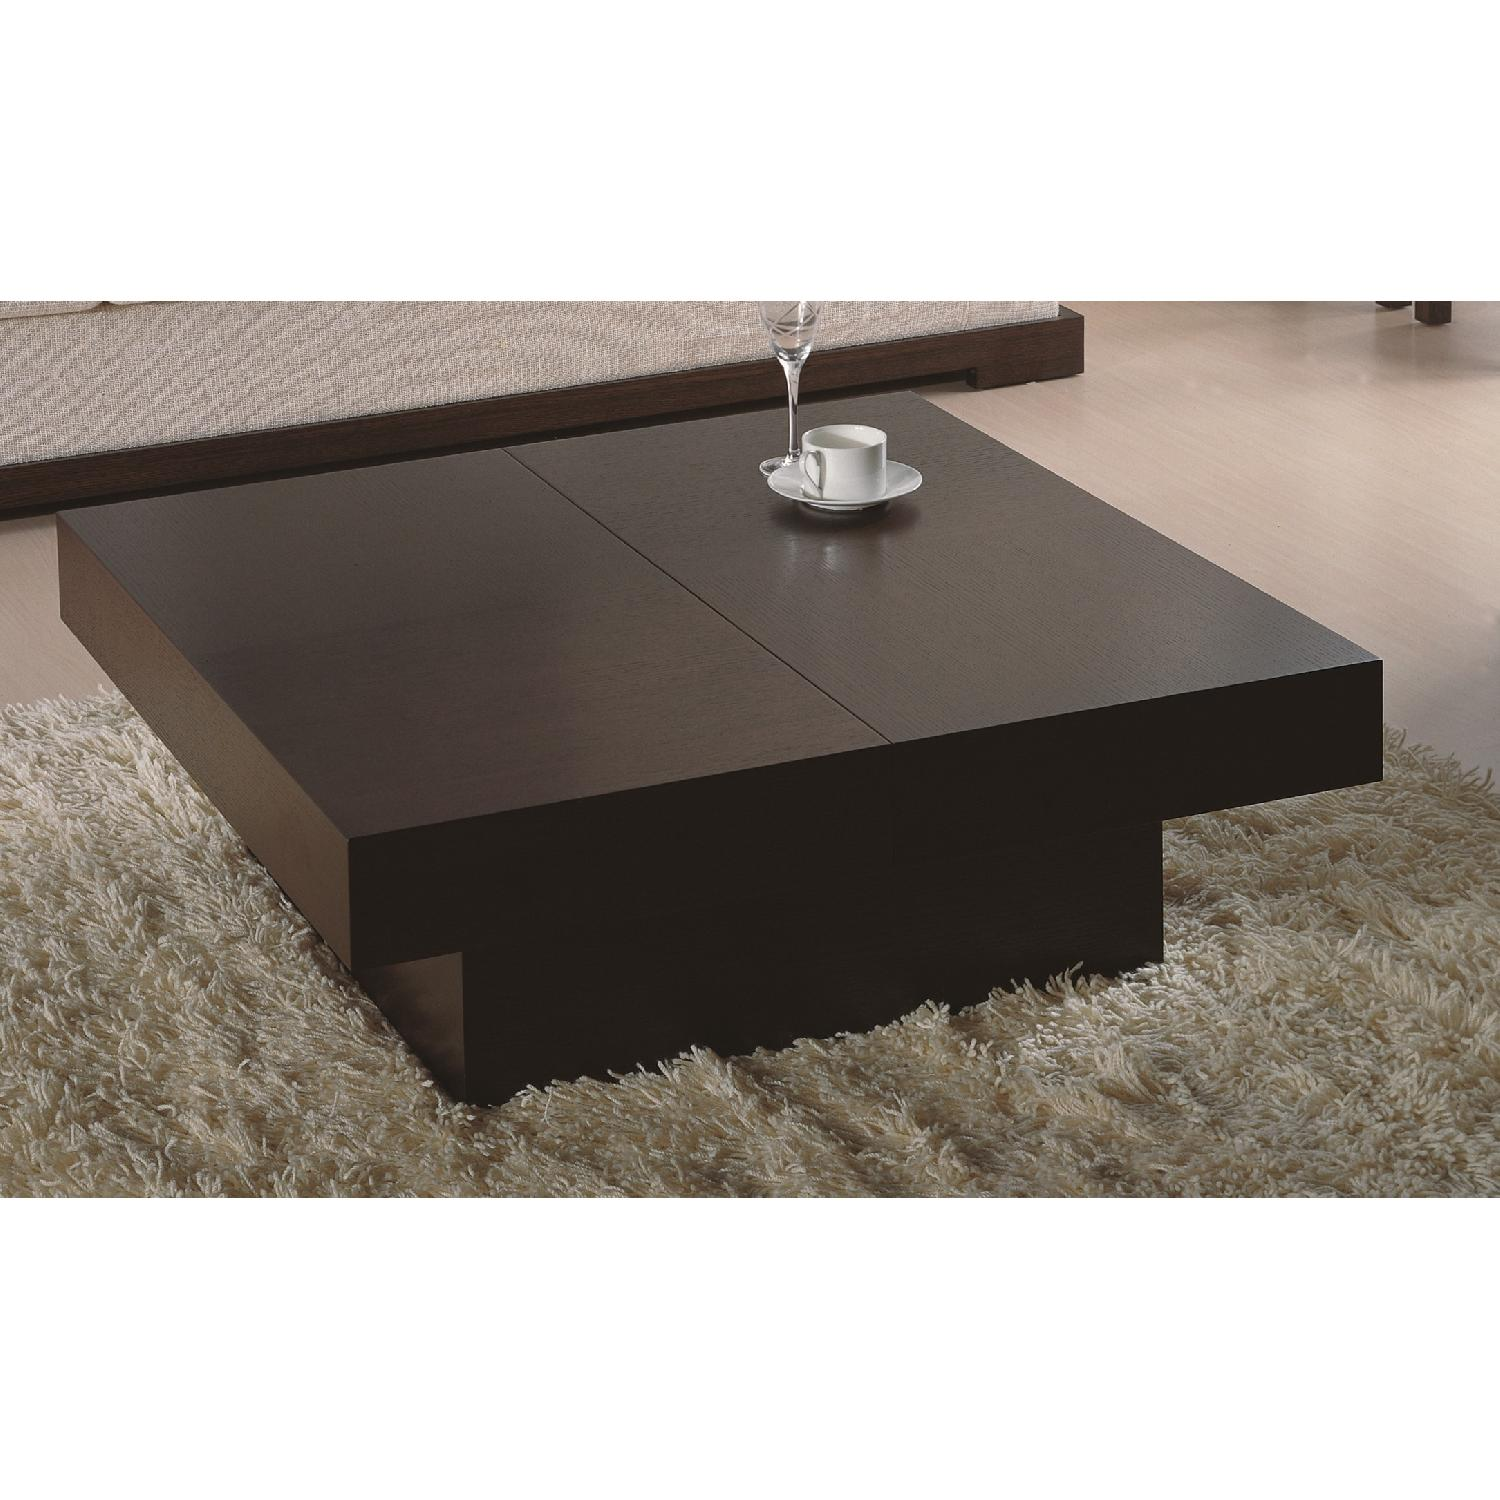 Modern Square Coffee Table in Wenge Finish w/ Hidden Storage-0